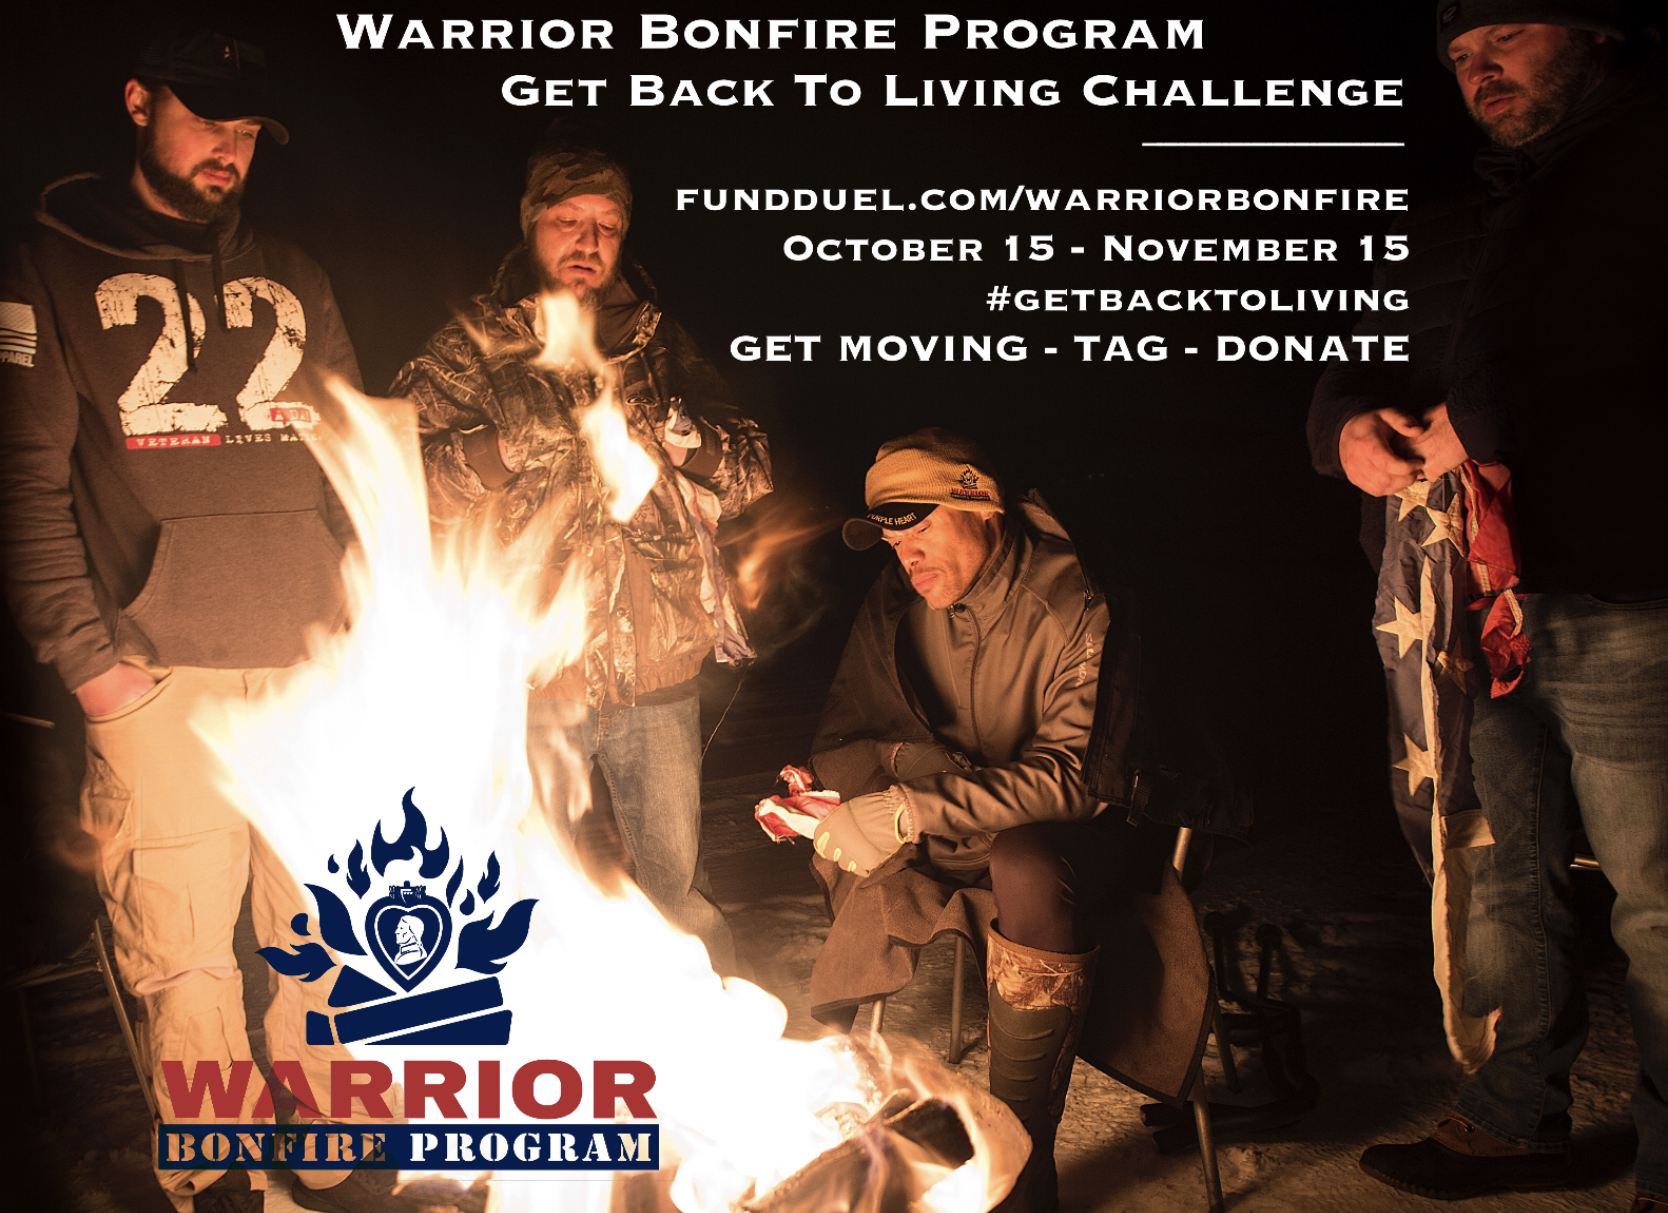 Join Warrior Bonfire Program in fundraising challenge for Diamonds and Dogtags